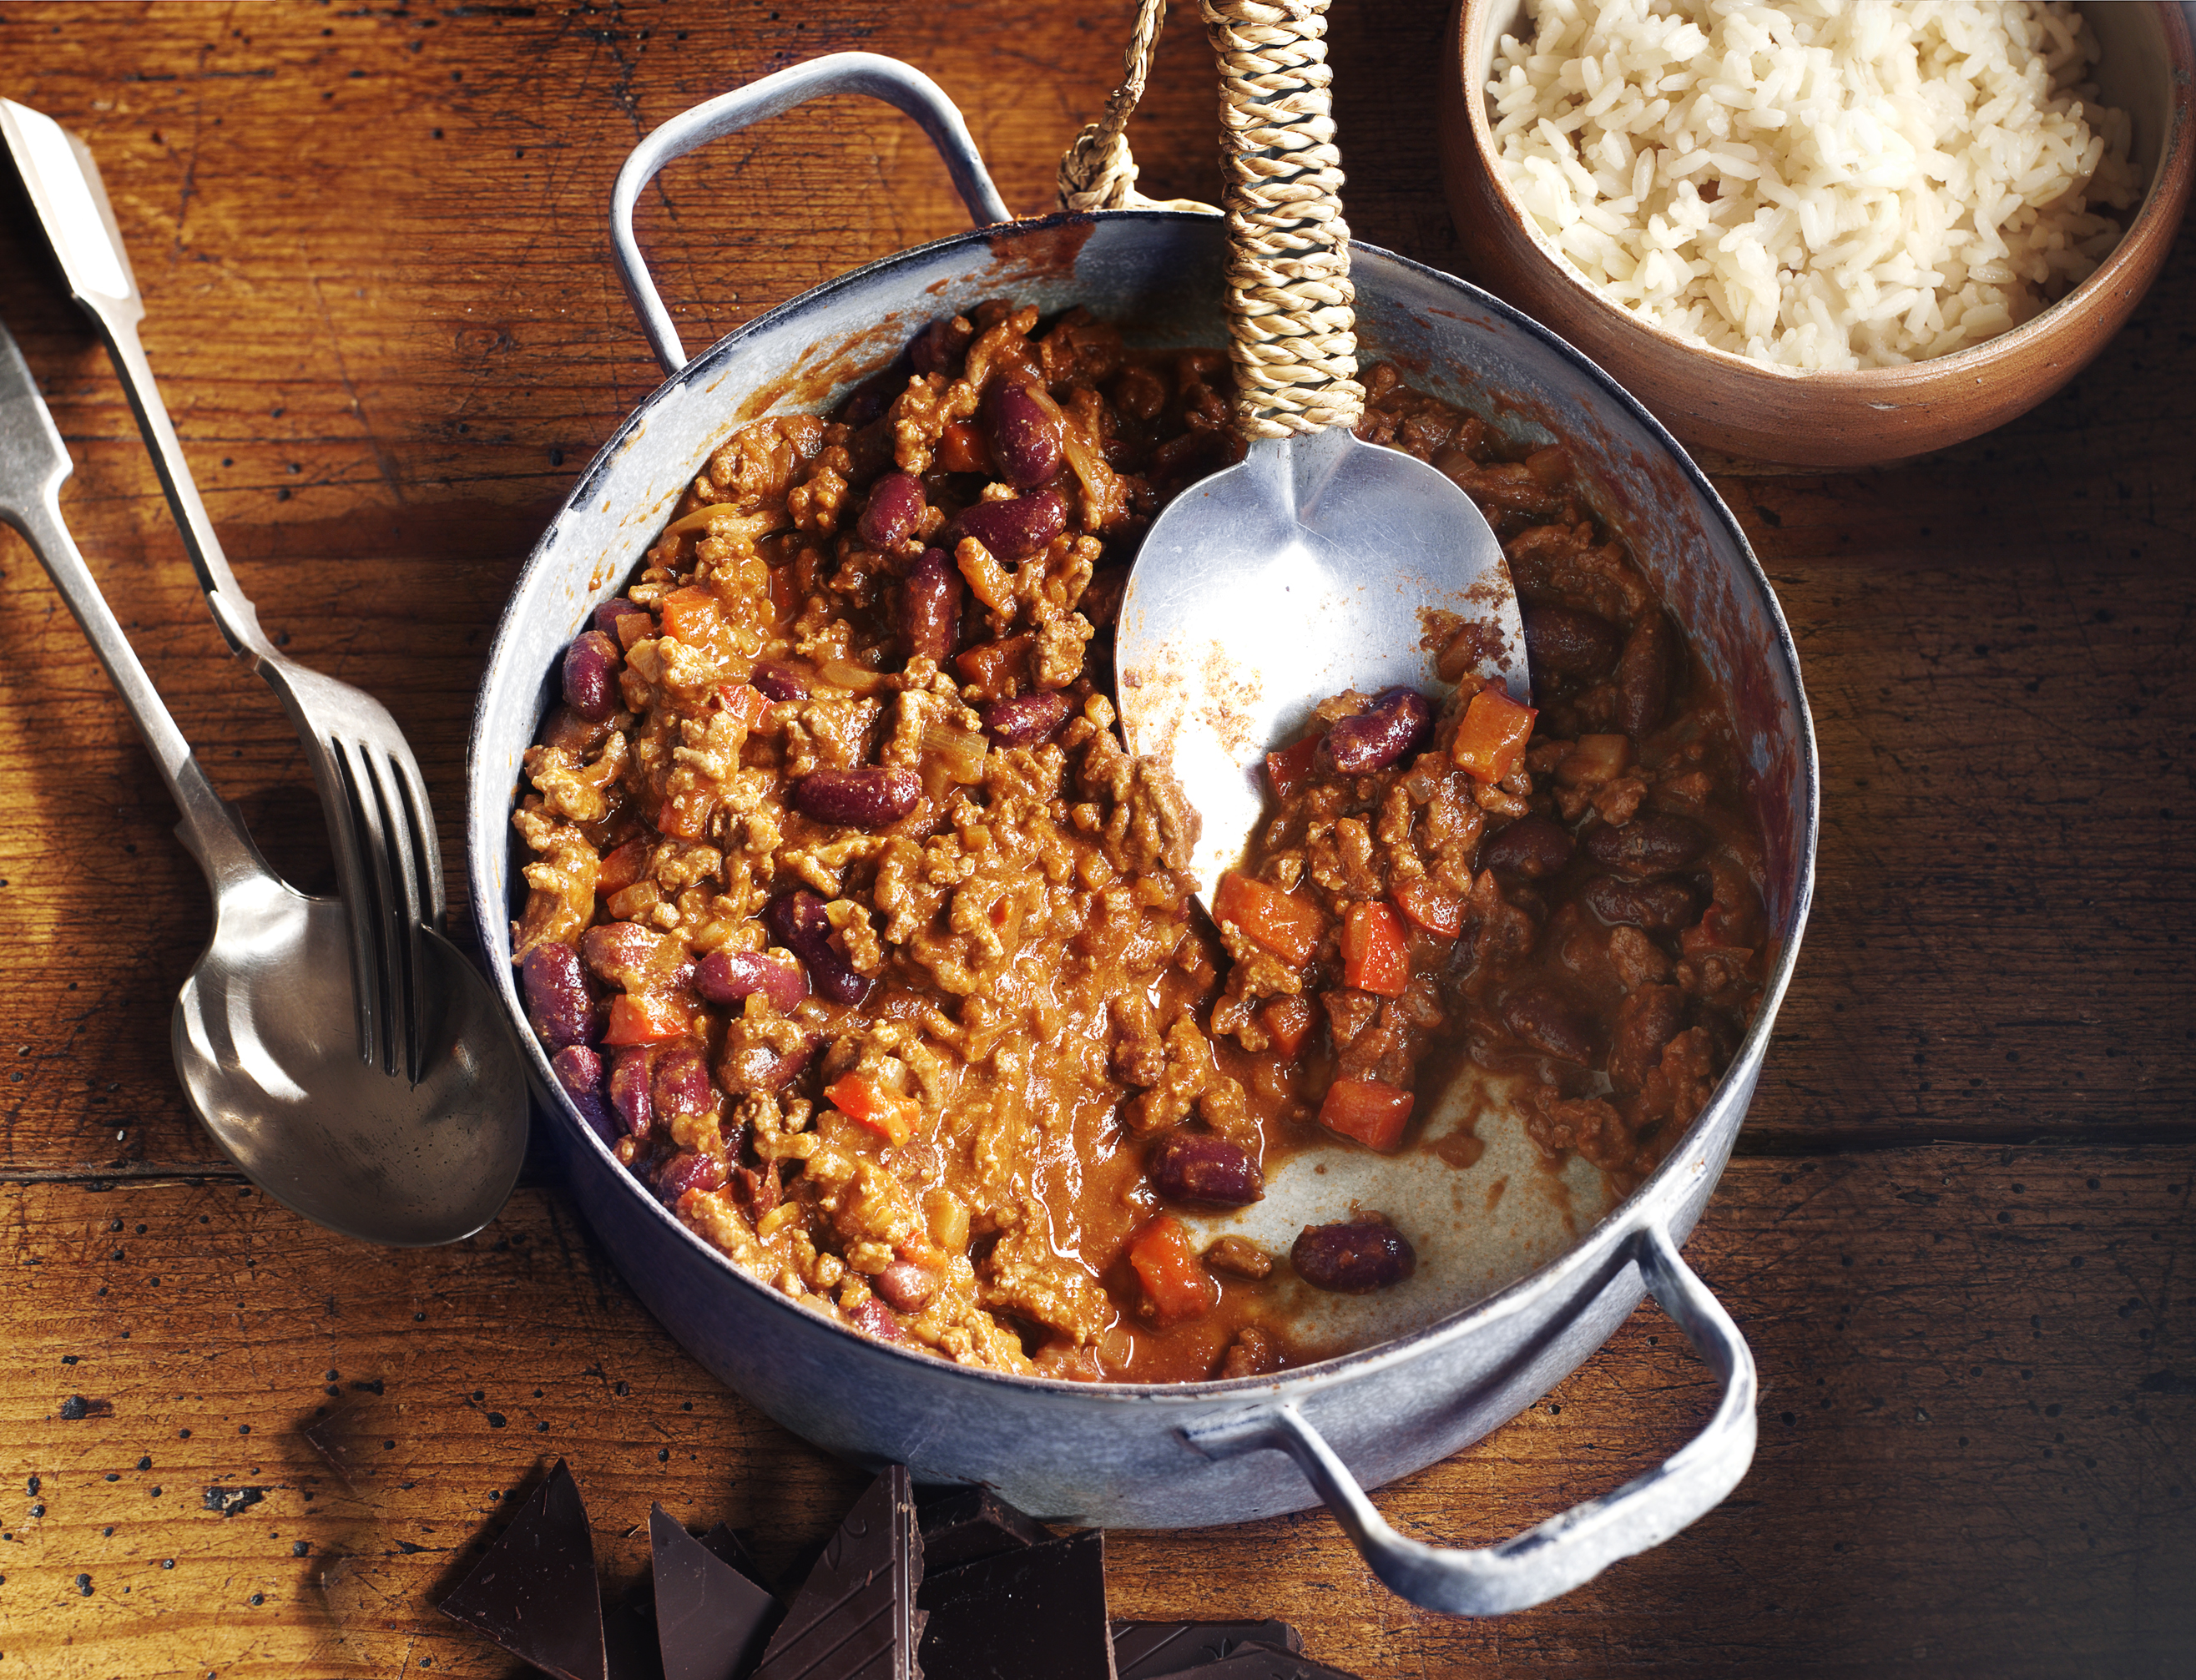 Chilli con carne with chocolate candis for Adding chocolate to chilli con carne